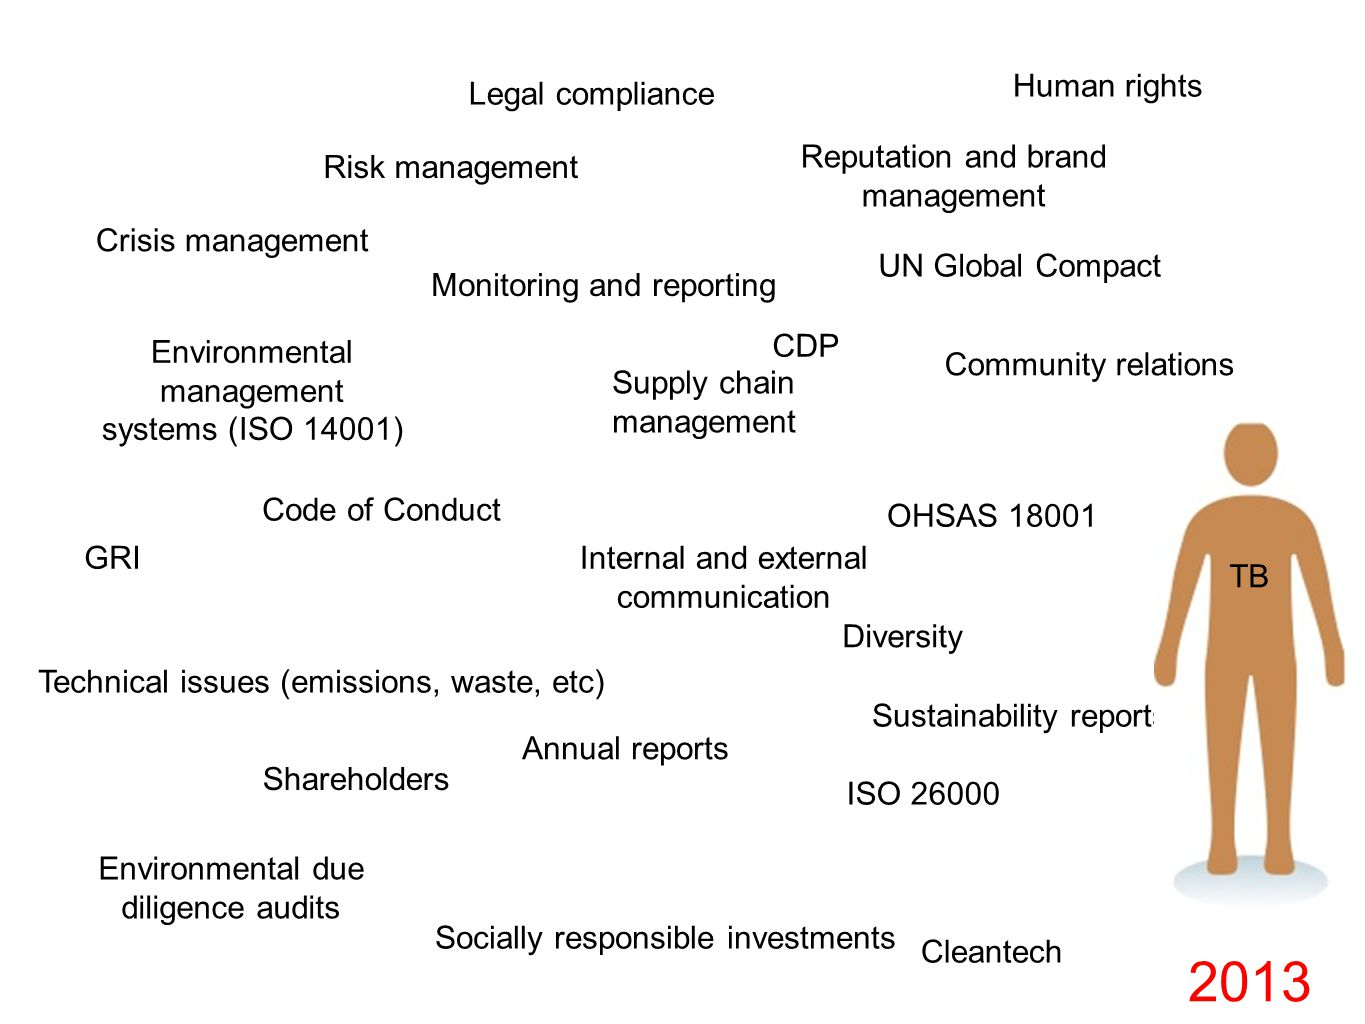 2013 Human rights Legal compliance Risk management